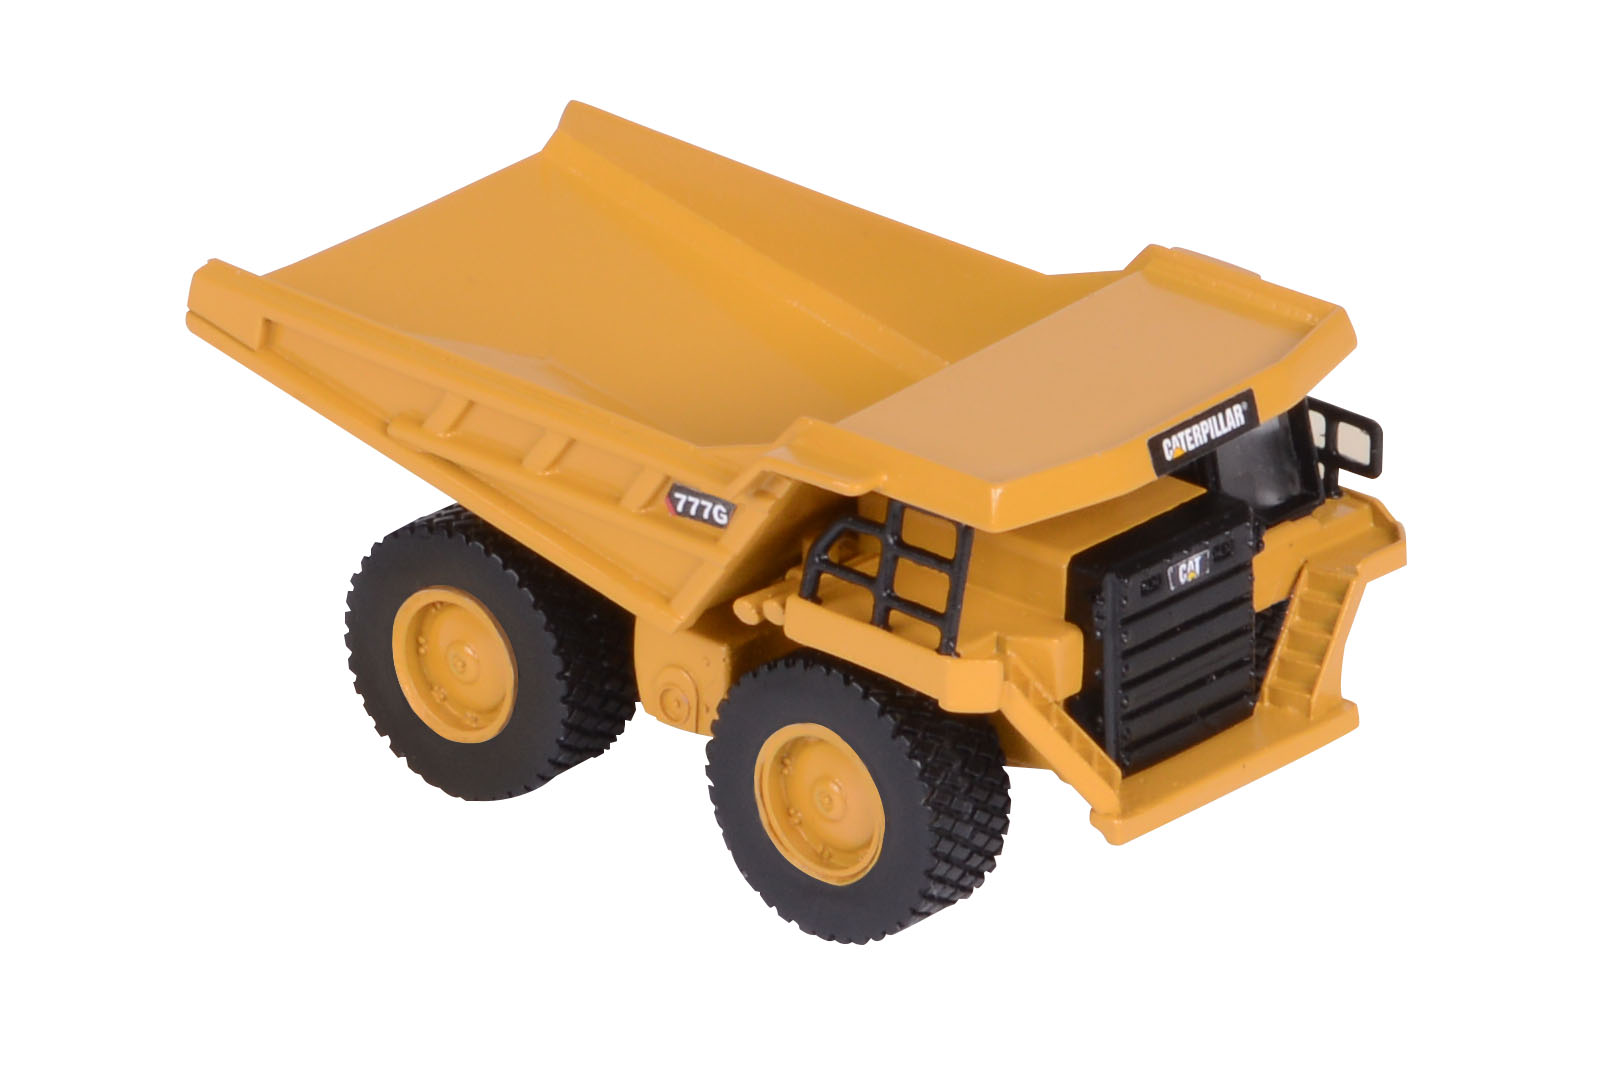 Caterpillar Metal Machine 777G Dump Truck by Toy State International Limited